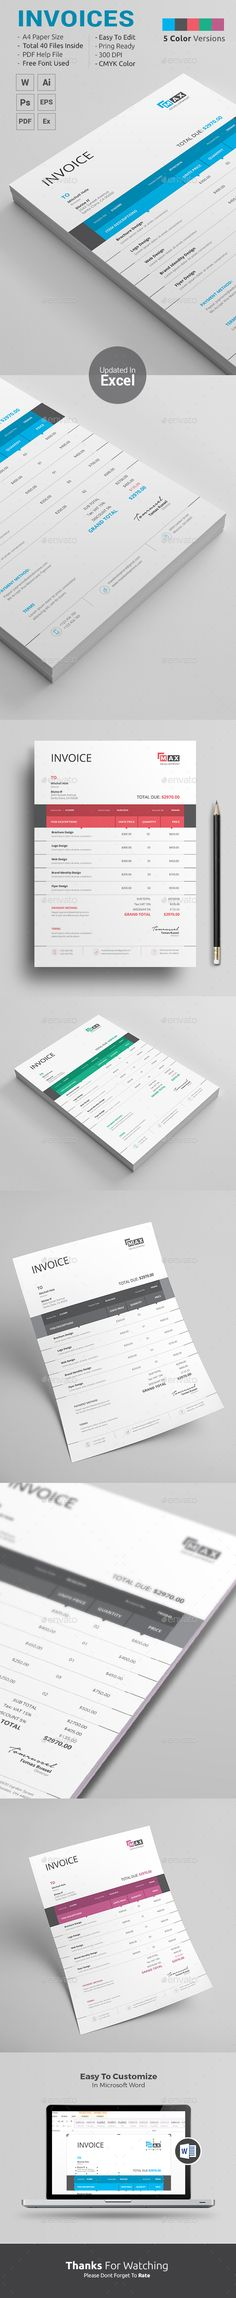 Active Studio Invoice Business proposal, Newsletter templates and